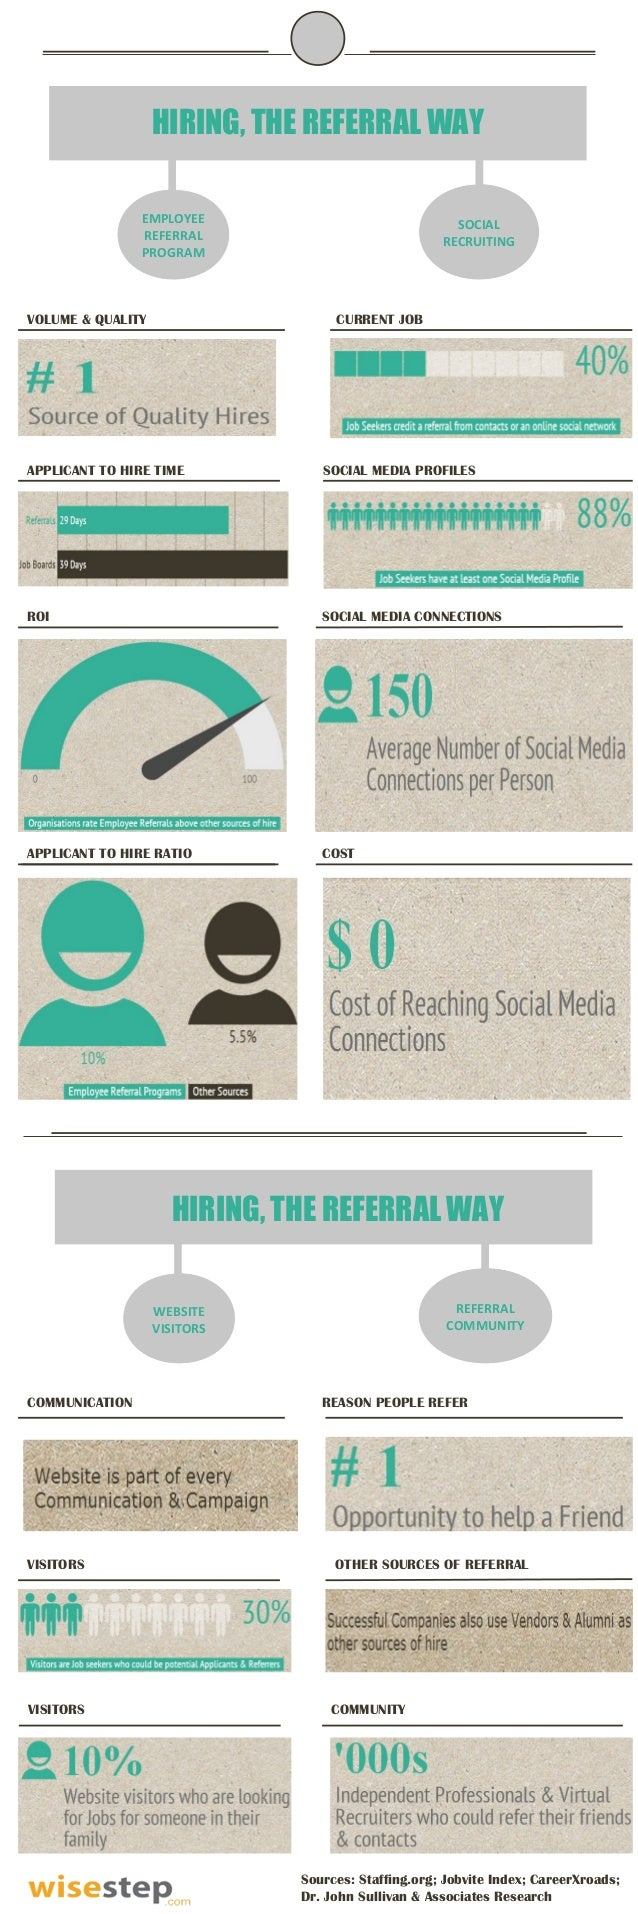 HIRING, THE REFERRAL WAY EMPLOYEE REFERRAL PROGRAM  VOLUME & QUALITY  SOCIAL RECRUITING  CURRENT JOB  APPLICANT TO HIRE TI...